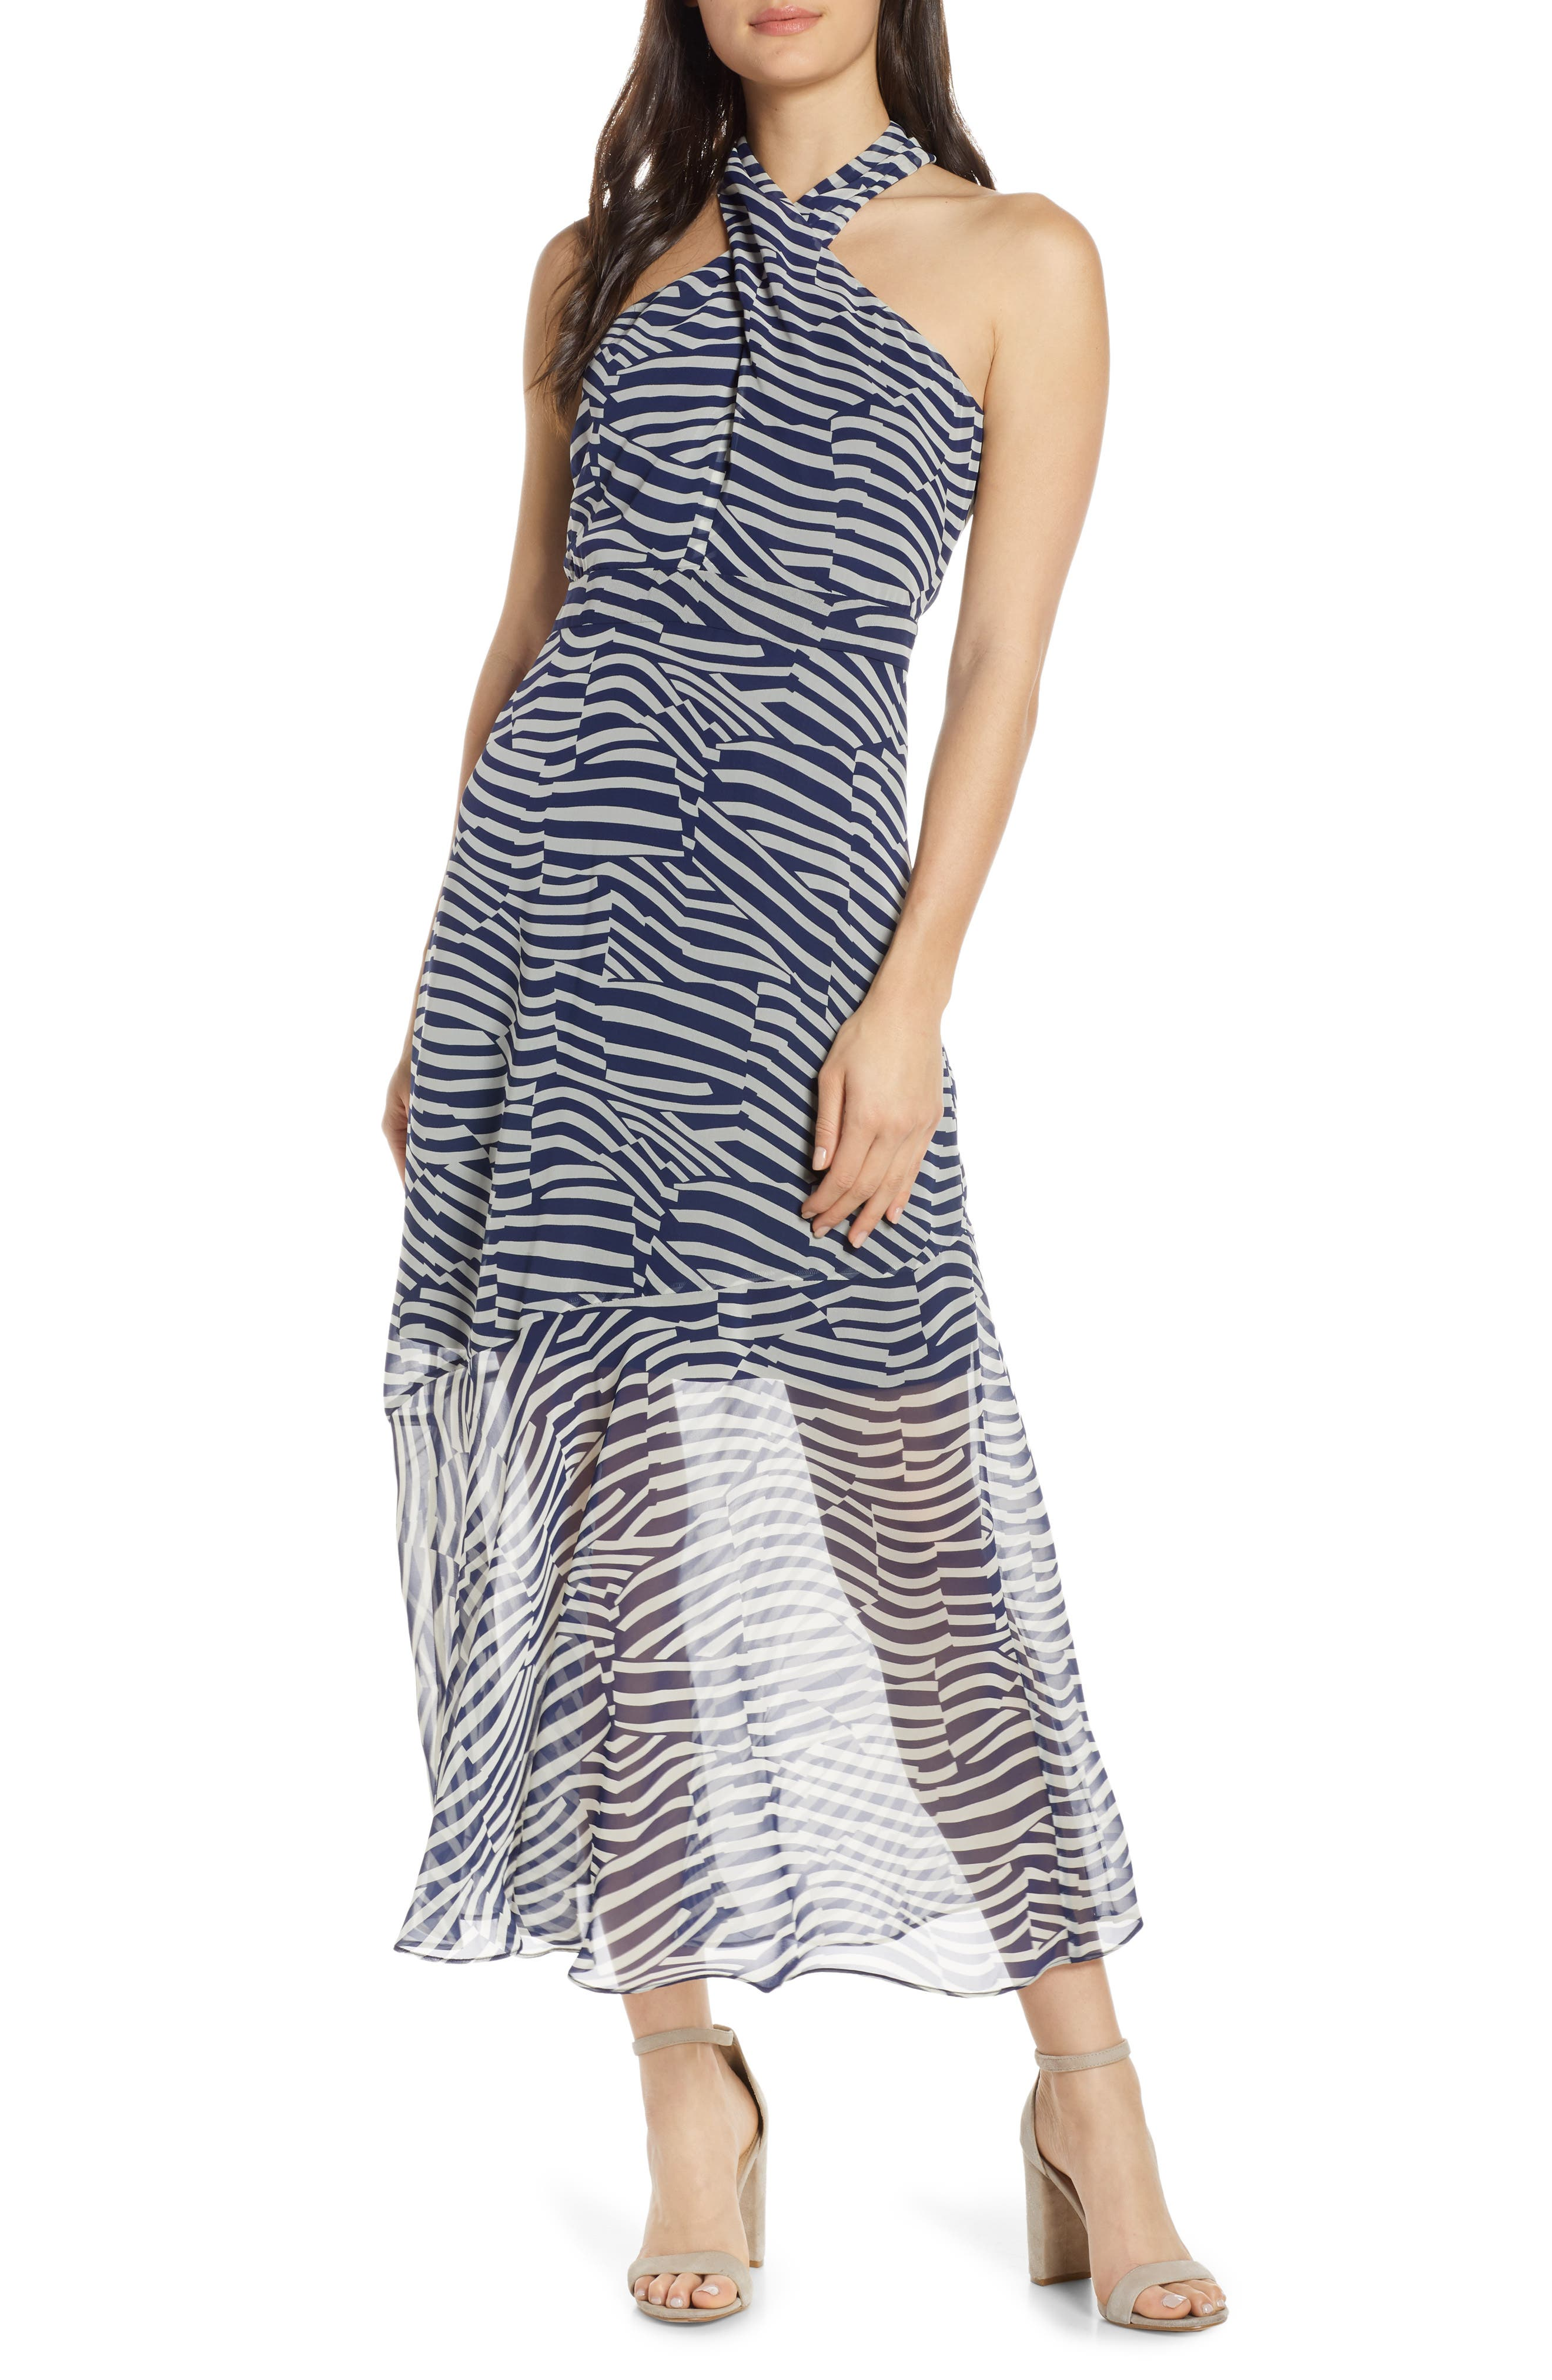 Sam Edelman Patchwork Stripe Print Chiffon Halter Dress, Blue